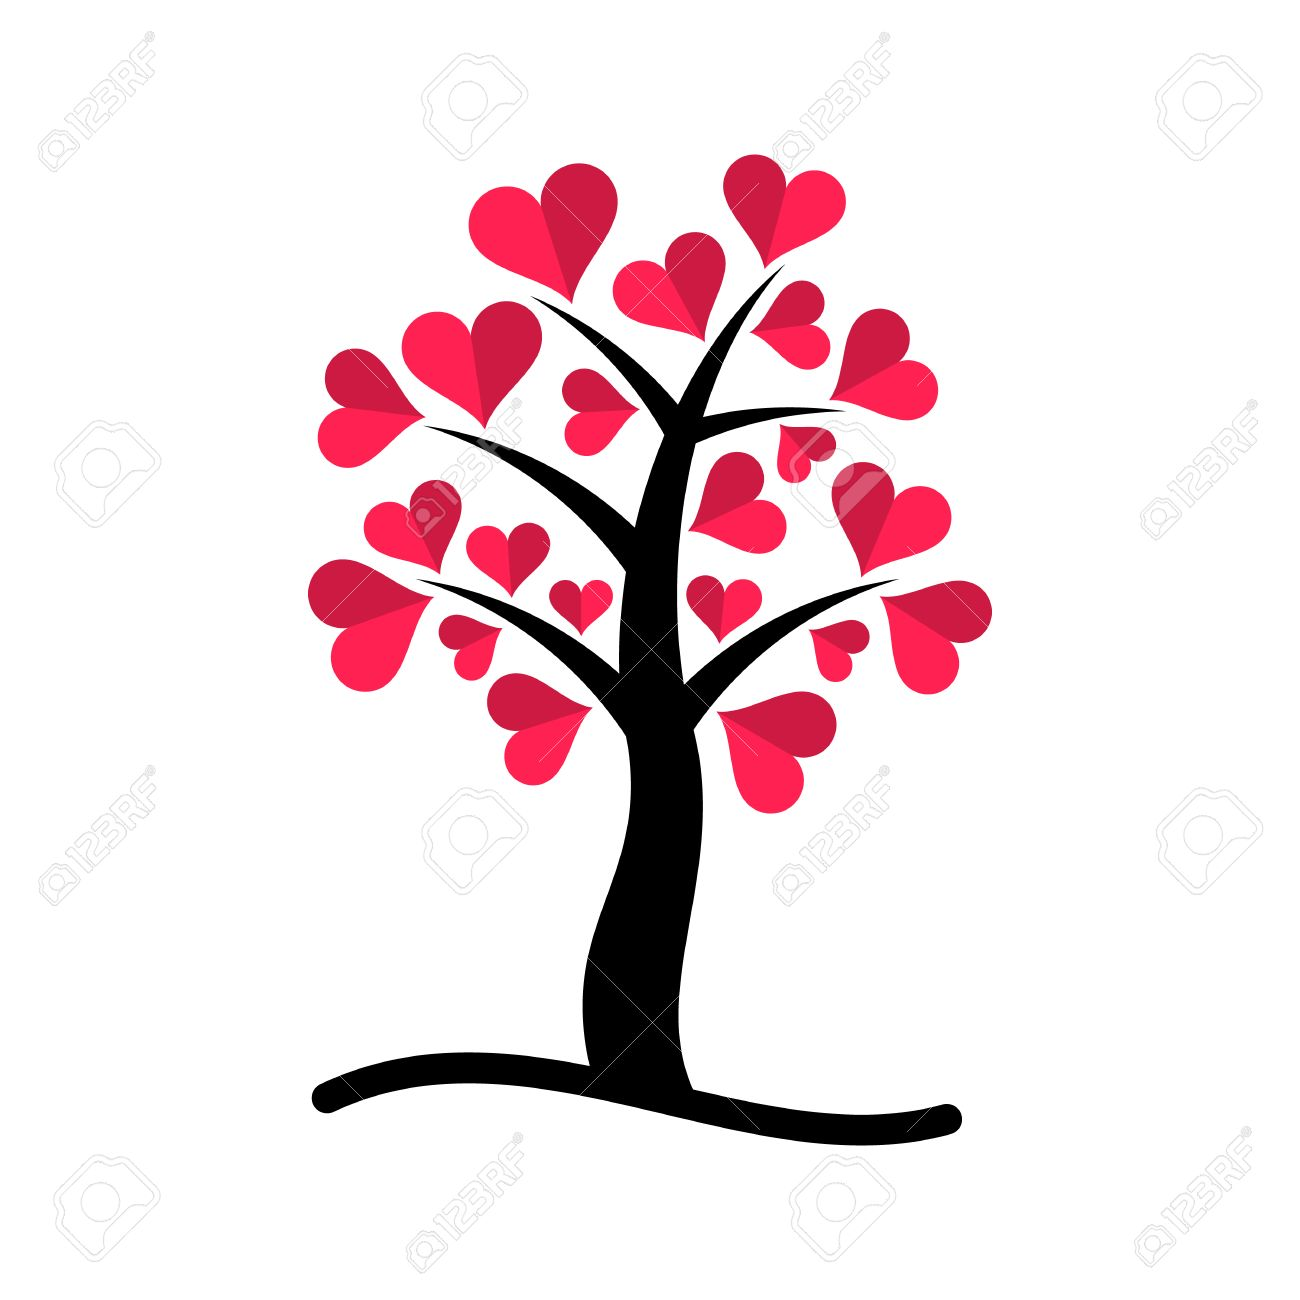 Fullsize Of Tree With Heart Shaped Leaves